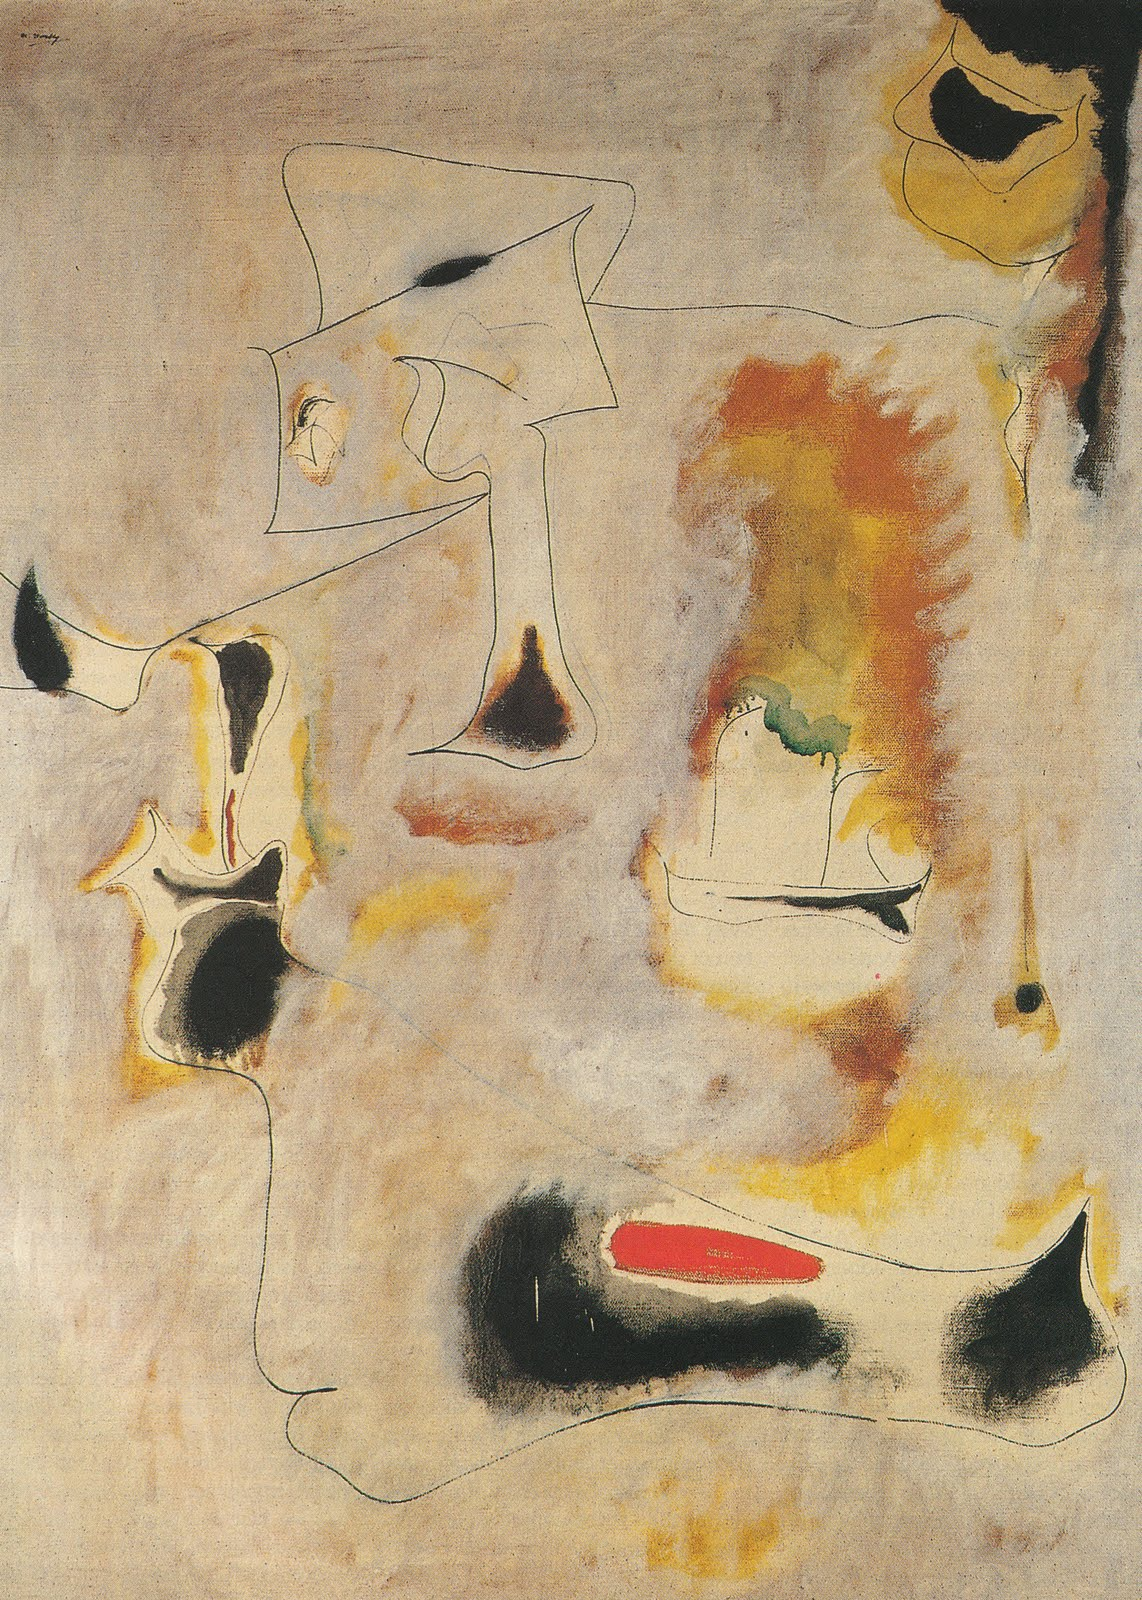 A biography of arshile gorky a turkish painter